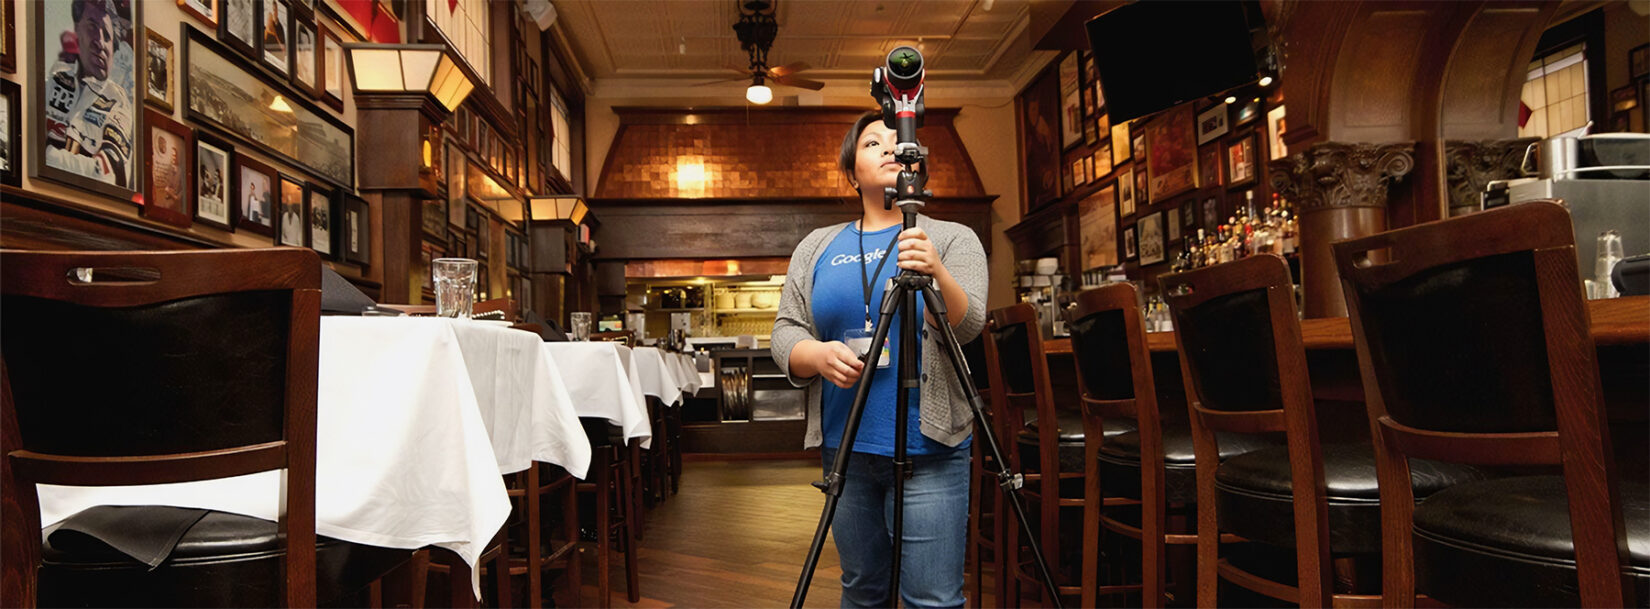 Google Employee Setting Up Camera in a Restaurant to Create Google Street View